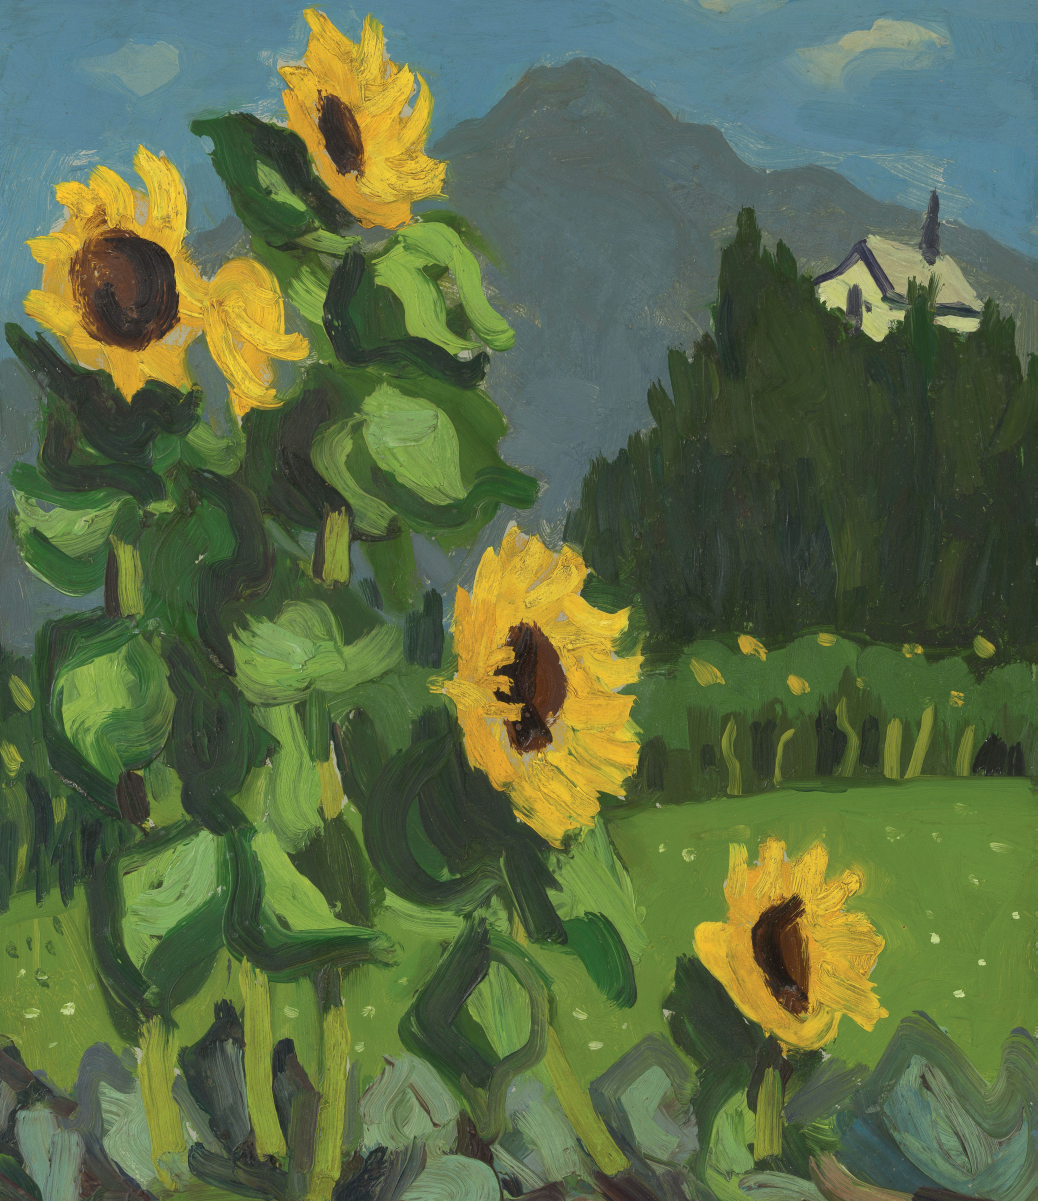 'Sunflowers with Mountains Beyond' gan Kyffin Williams